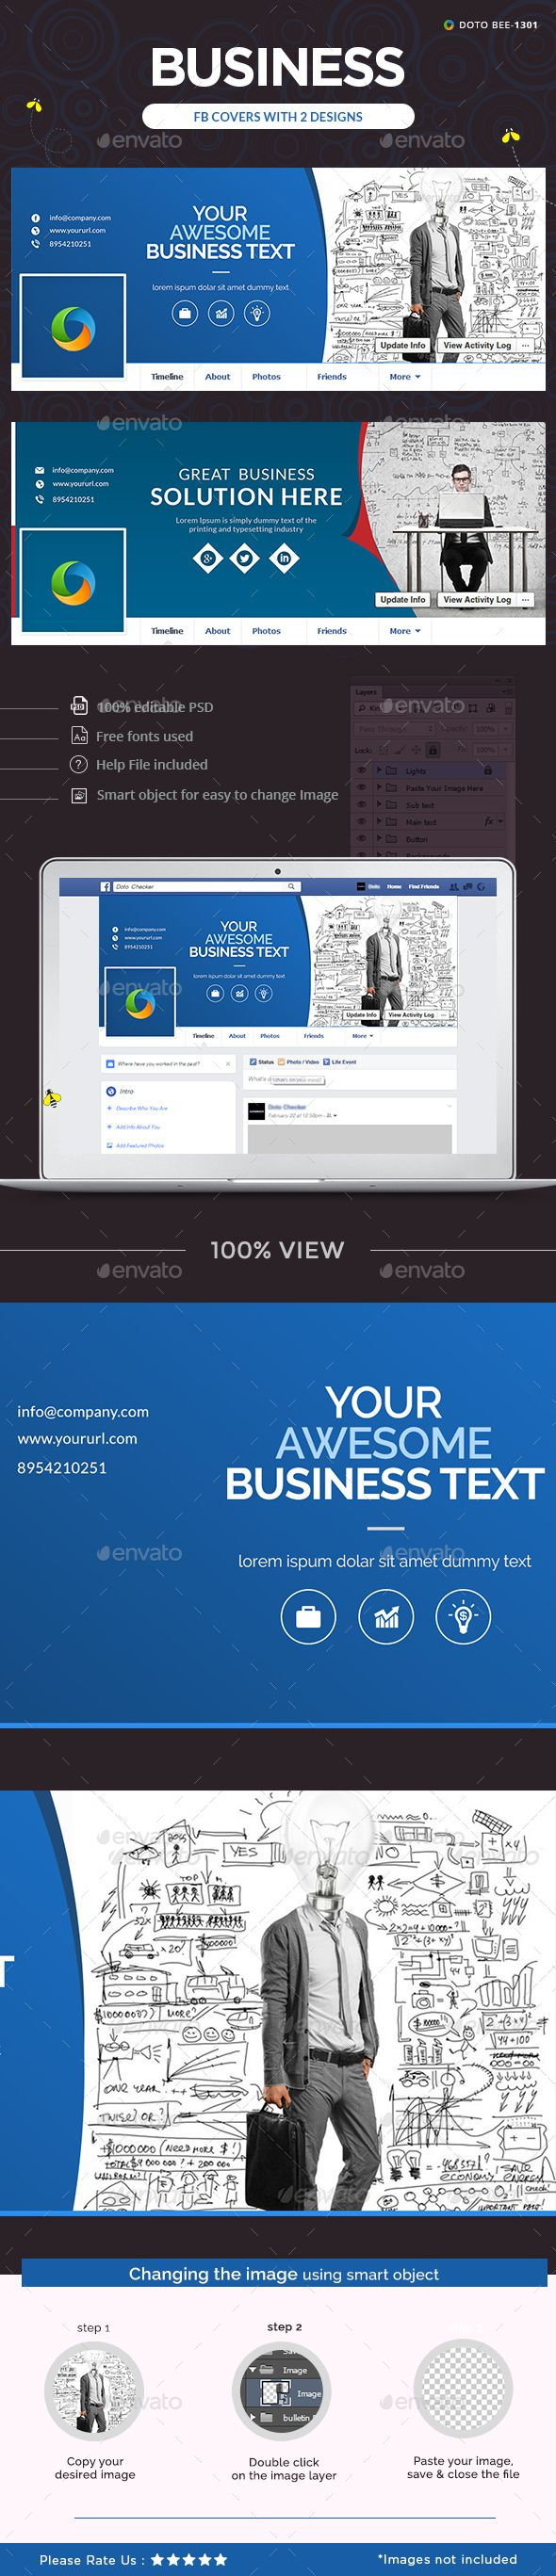 Business facebook cover pinterest facebook cover template business facebook cover template psd download here httpgraphicriver accmission Images